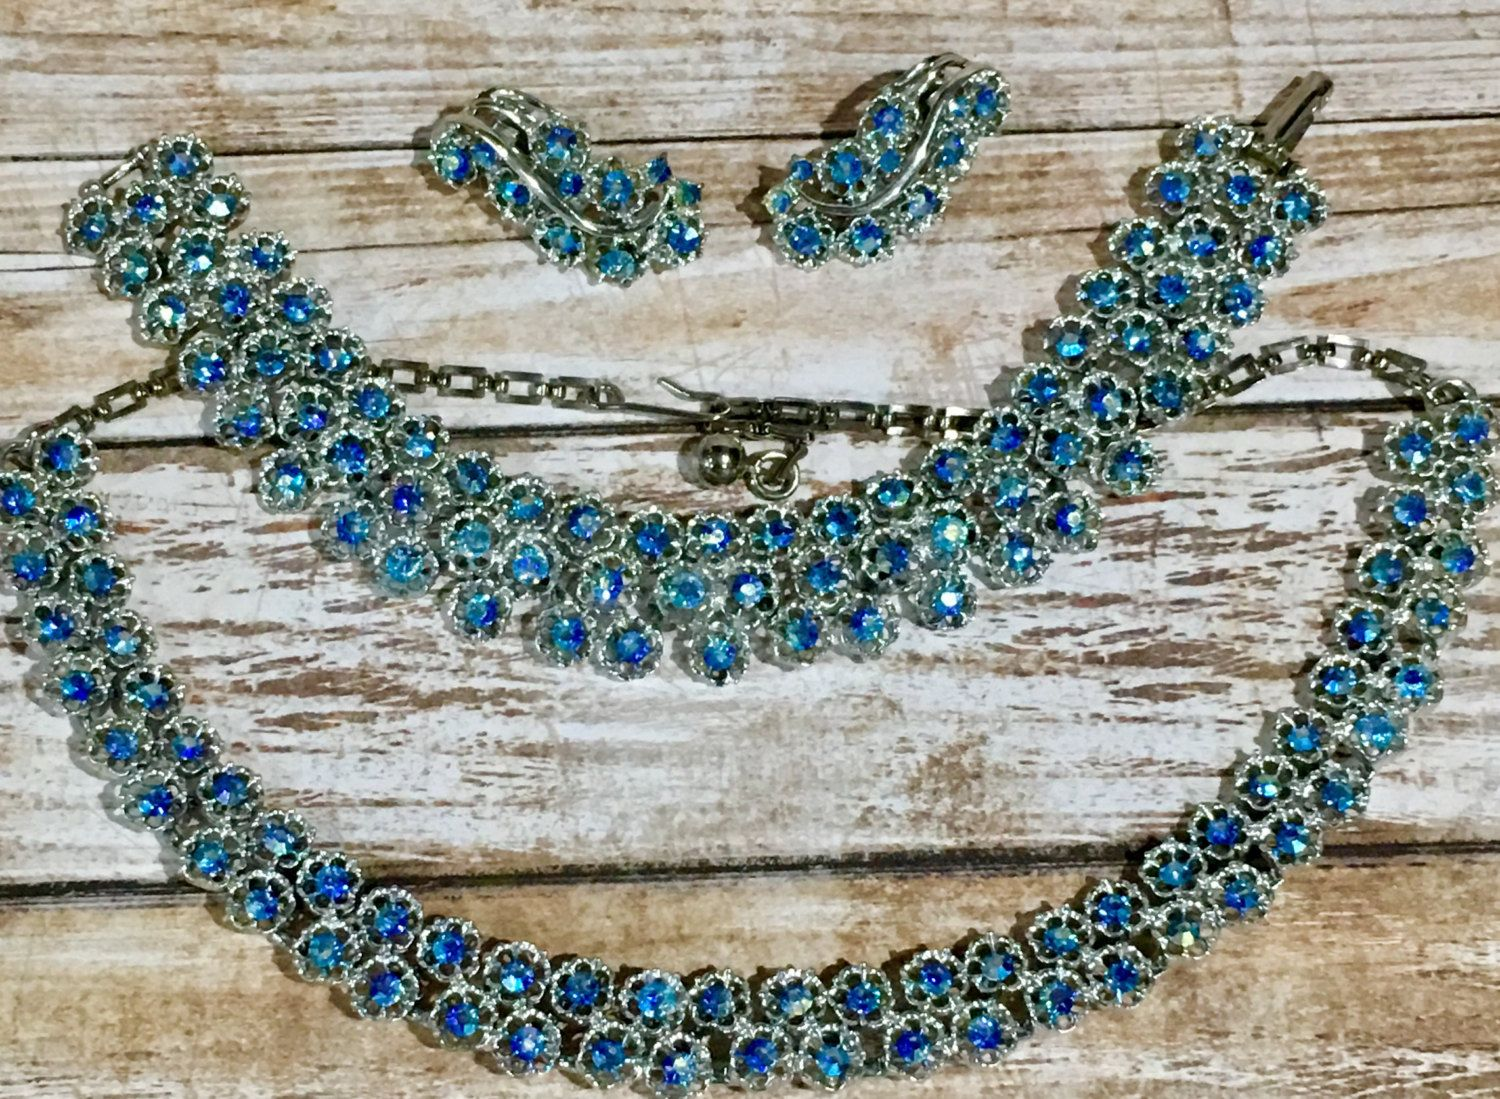 Coro Grand Parure Blue Aurora Borealis Crystals in Silver Setting // 1950-60 Earrings, Necklace, Bracelet in excellent condition by YeuxDeux on Etsy